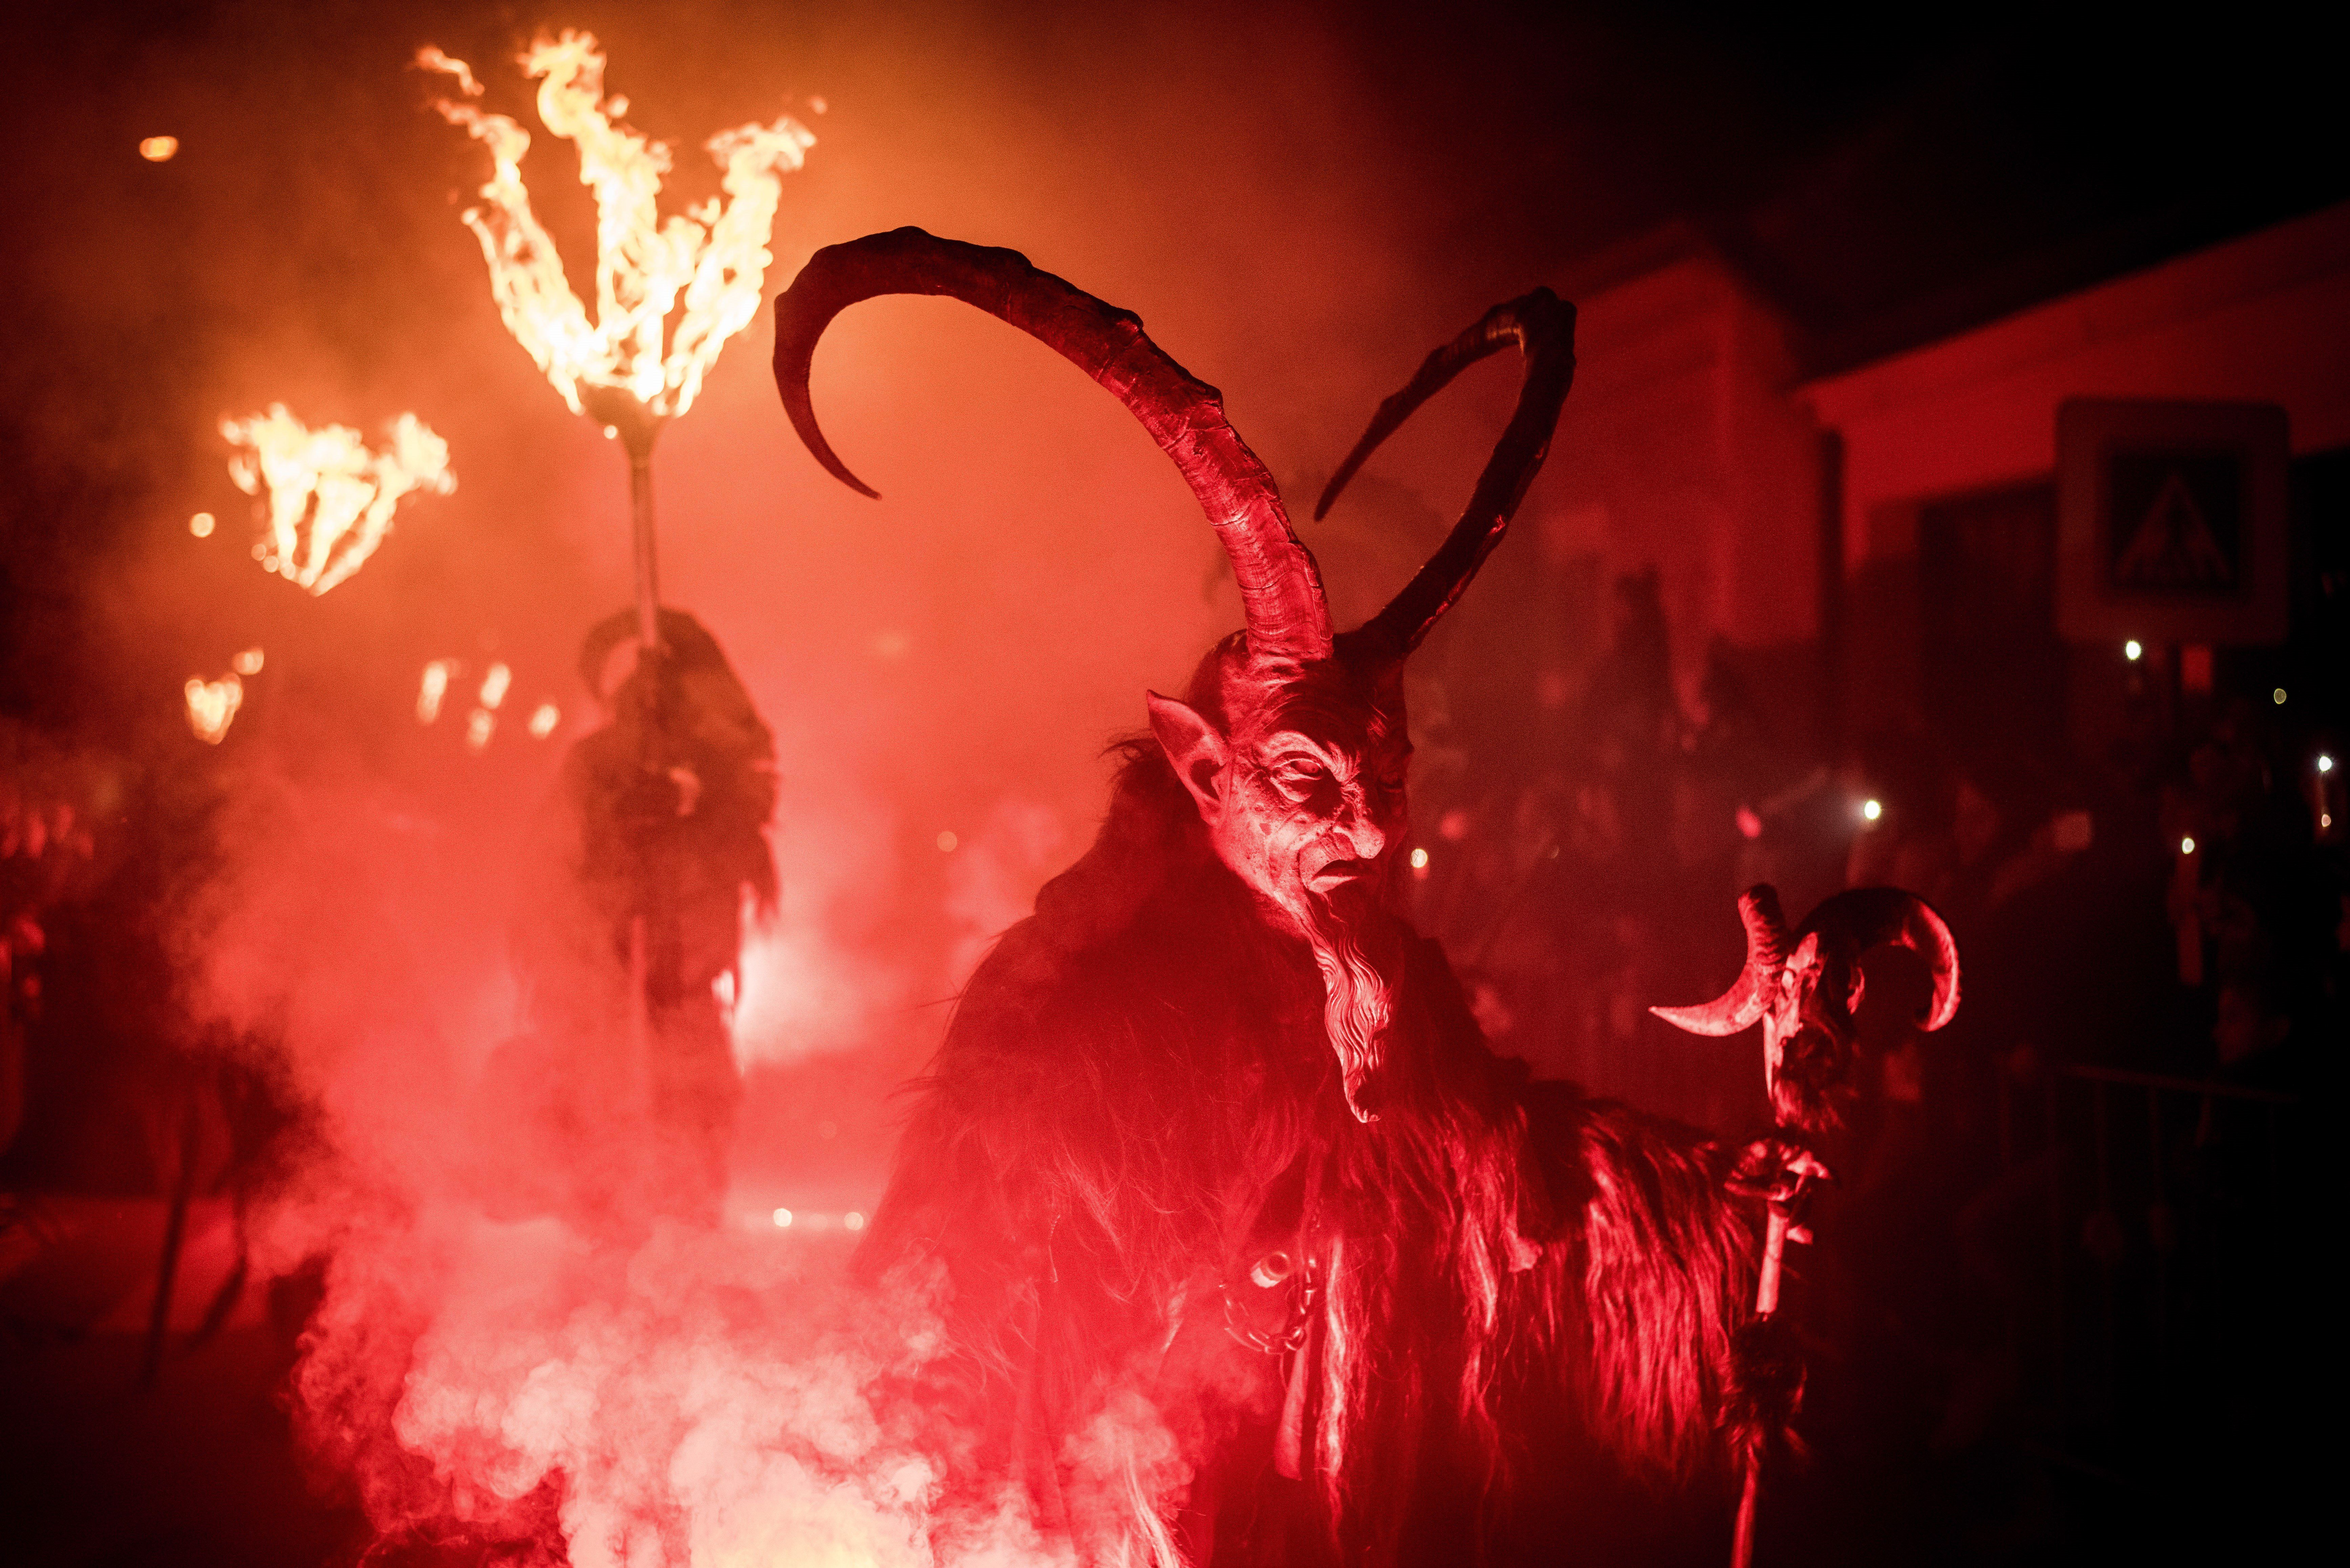 ZIDLOCHOVICE, CZECH REPUBLIC - NOVEMBER 26: Participants dressed as Krampus walk at the street during Krampus gathering on November 26, 2016 in Zidlochovice (at Brno), Czech Republic.  (Photo by Lukas Kabon/Anadolu Agency/Getty Images)